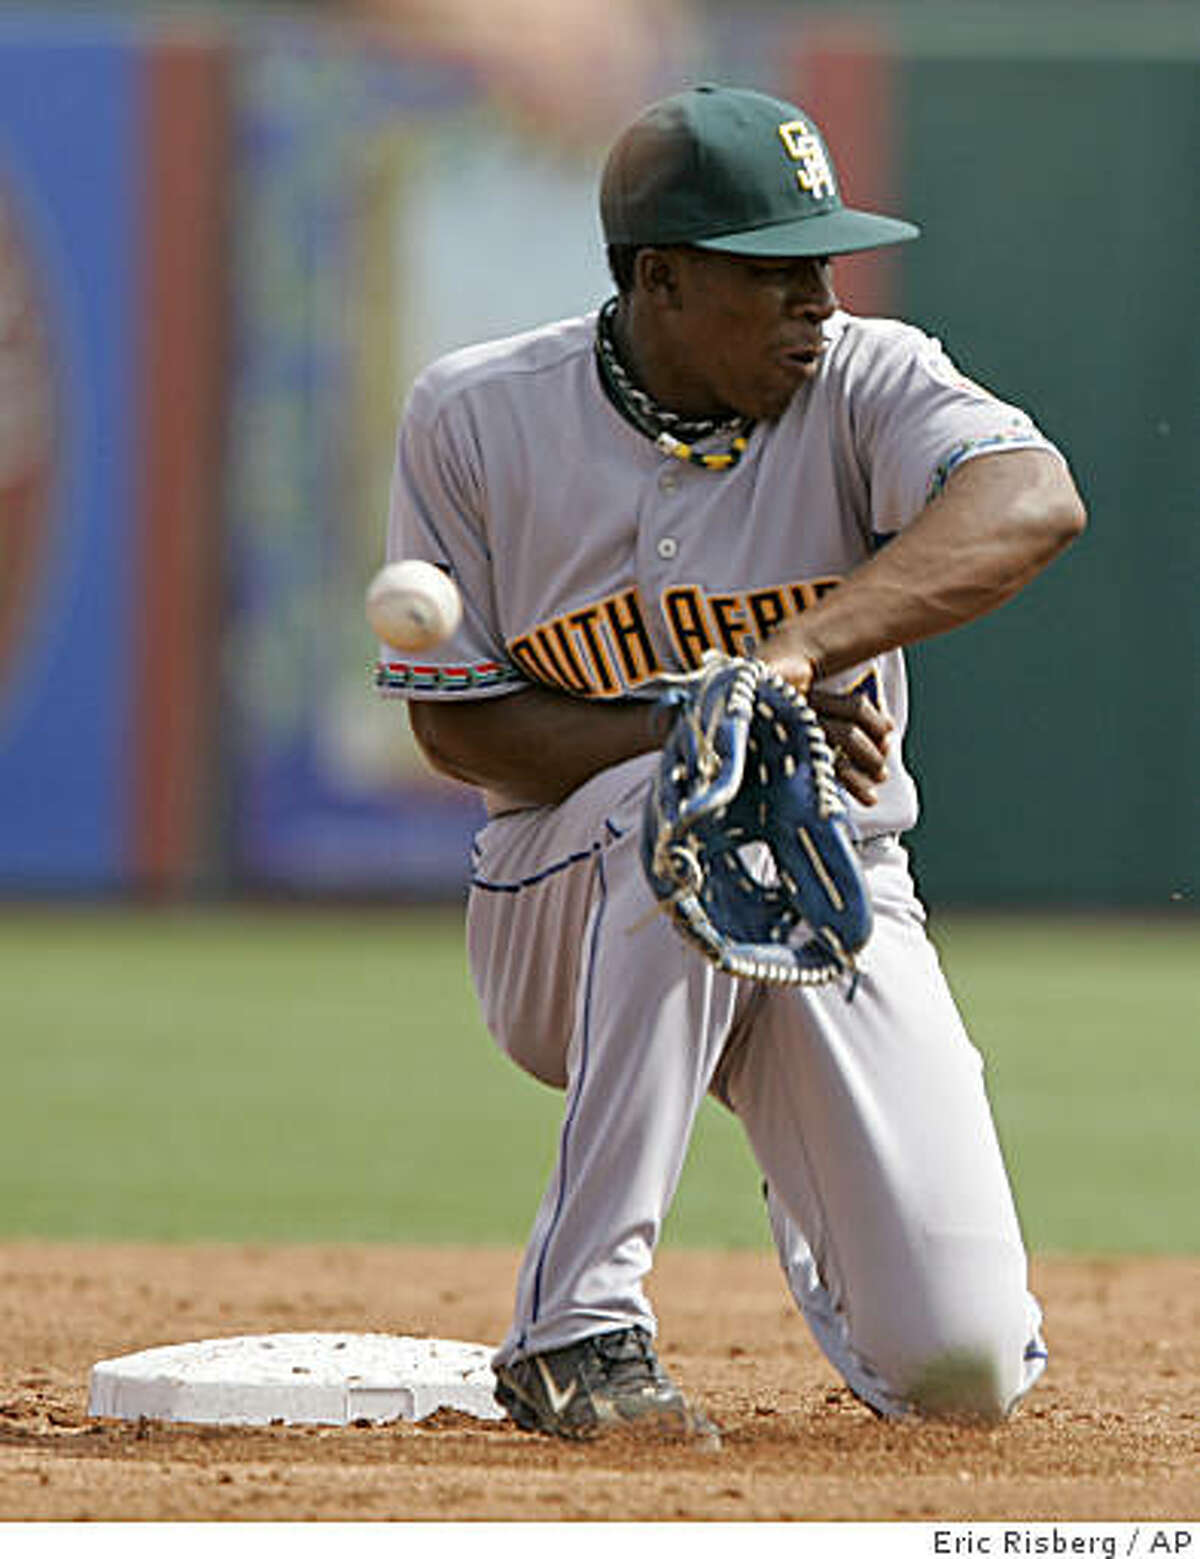 A throw to South Africa second baseman Gift Ngoepe goes past him during the first inning of an exhibition spring baseball game against the Los Angeles Angels in Tempe, Ariz., Wednesday, March 4, 2009. Angels' Sean Rodriguez stole second on the play. (AP Photo/Eric Risberg)